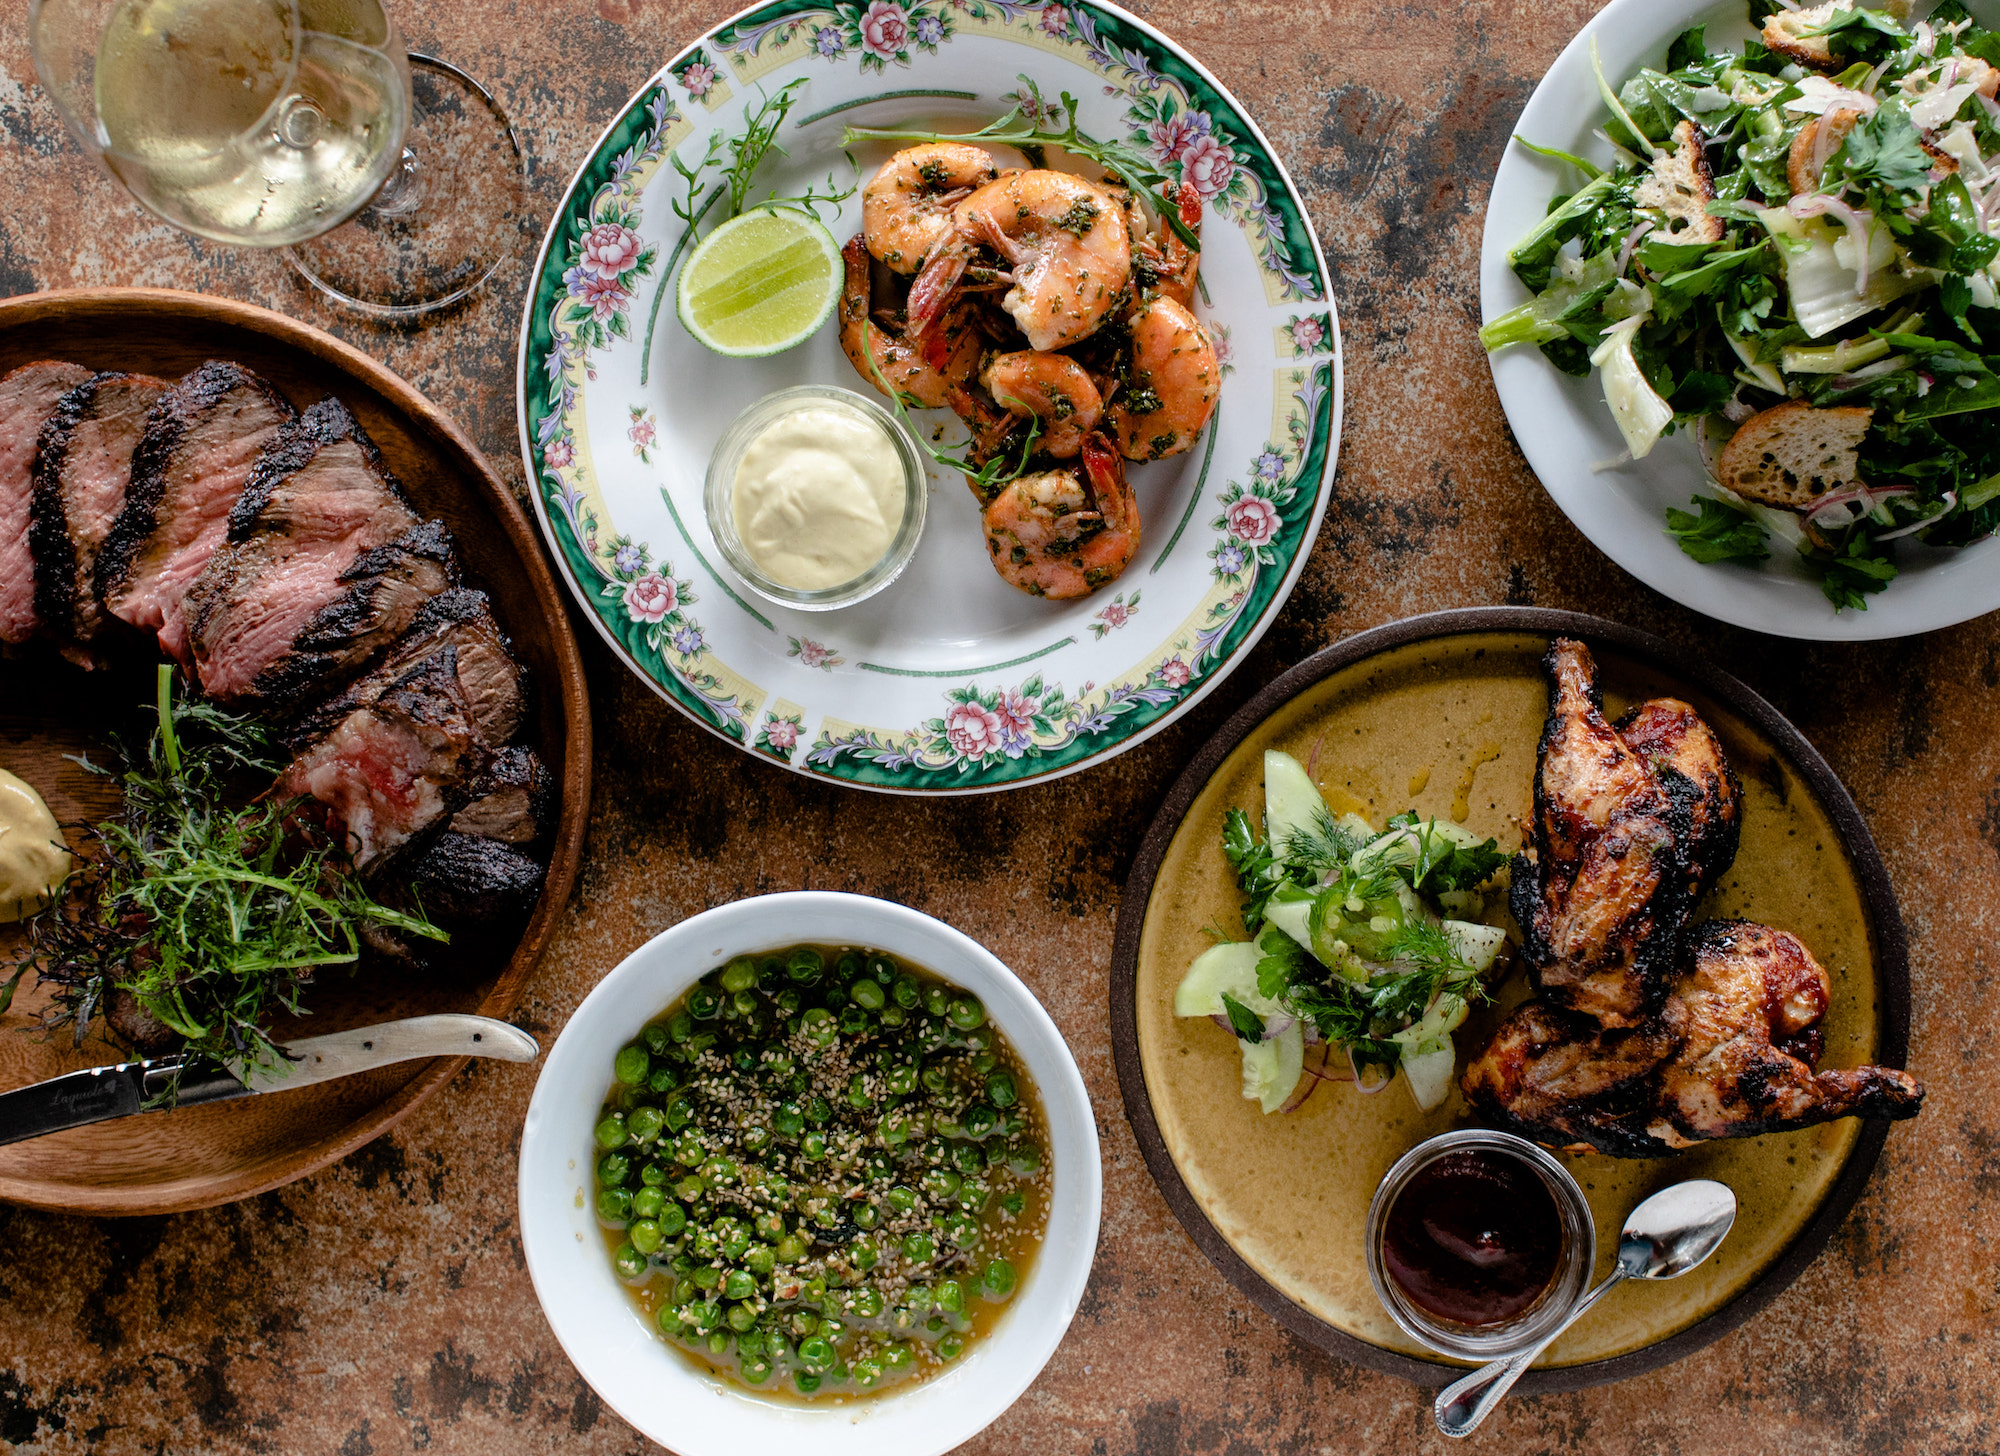 An overhead shot of rustic country plates filled with Southern cooking and grilled items.